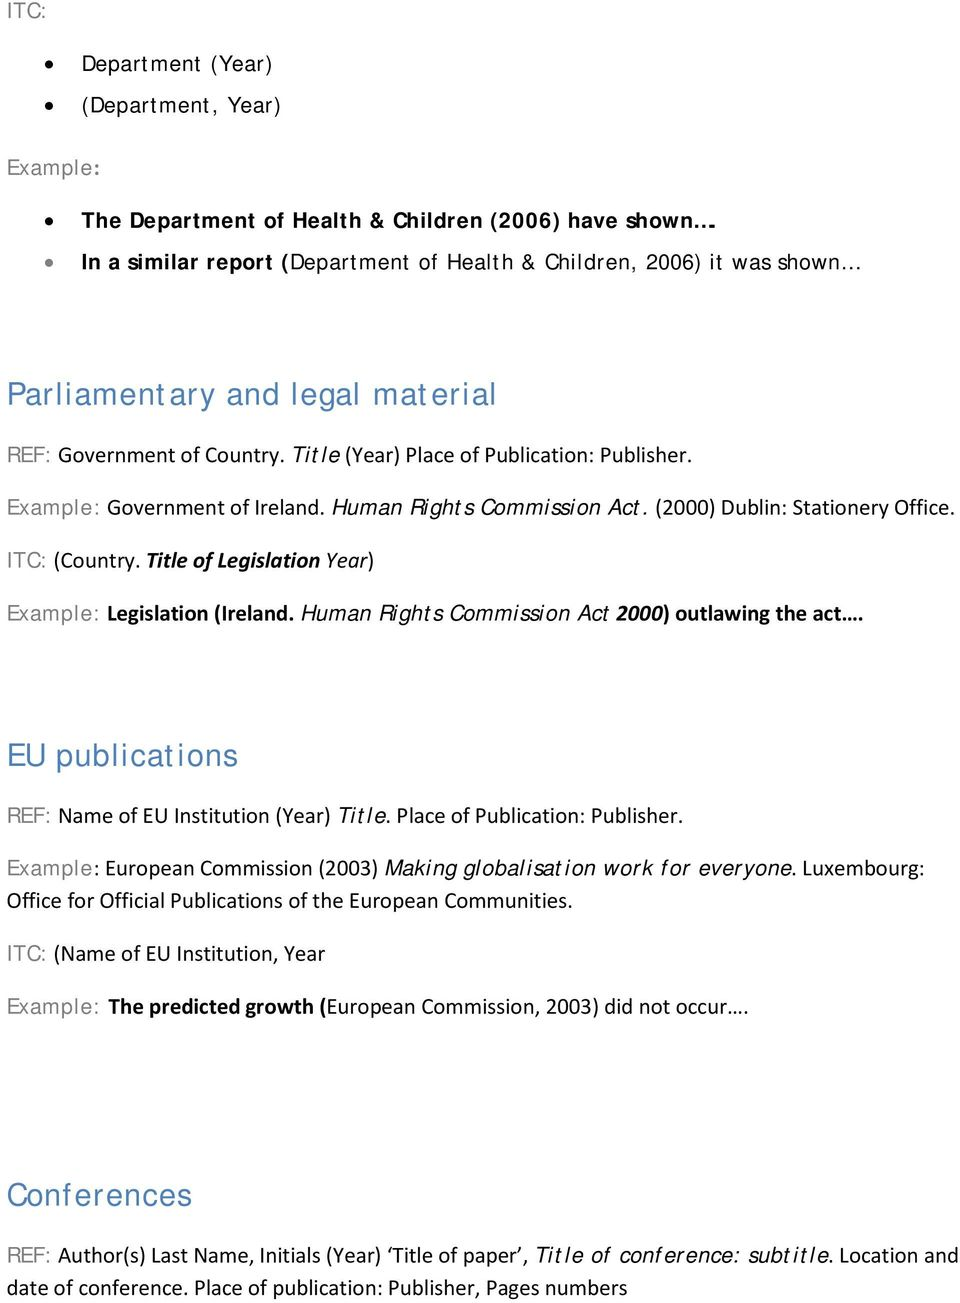 Government of Ireland. Human Rights Commission Act. (2000) Dublin: Stationery Office. (Country. Title of Legislation Year) Legislation (Ireland. Human Rights Commission Act 2000) outlawing the act.